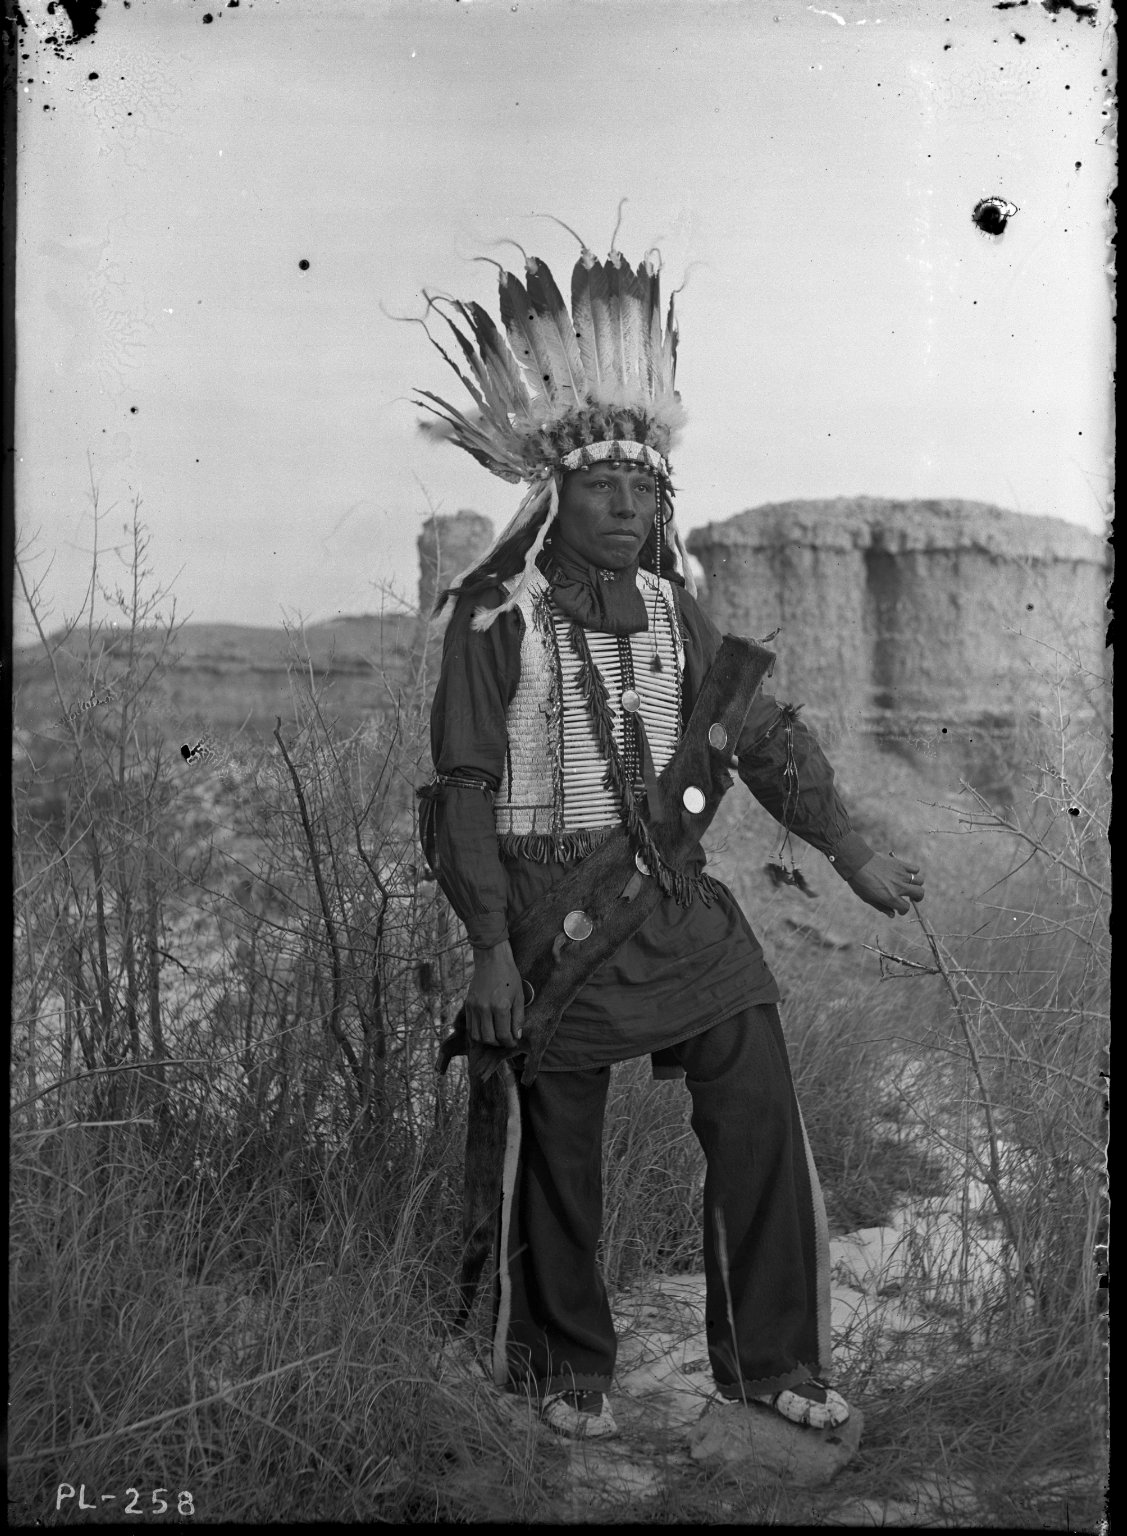 Sioux brave in feather headdress, butte background